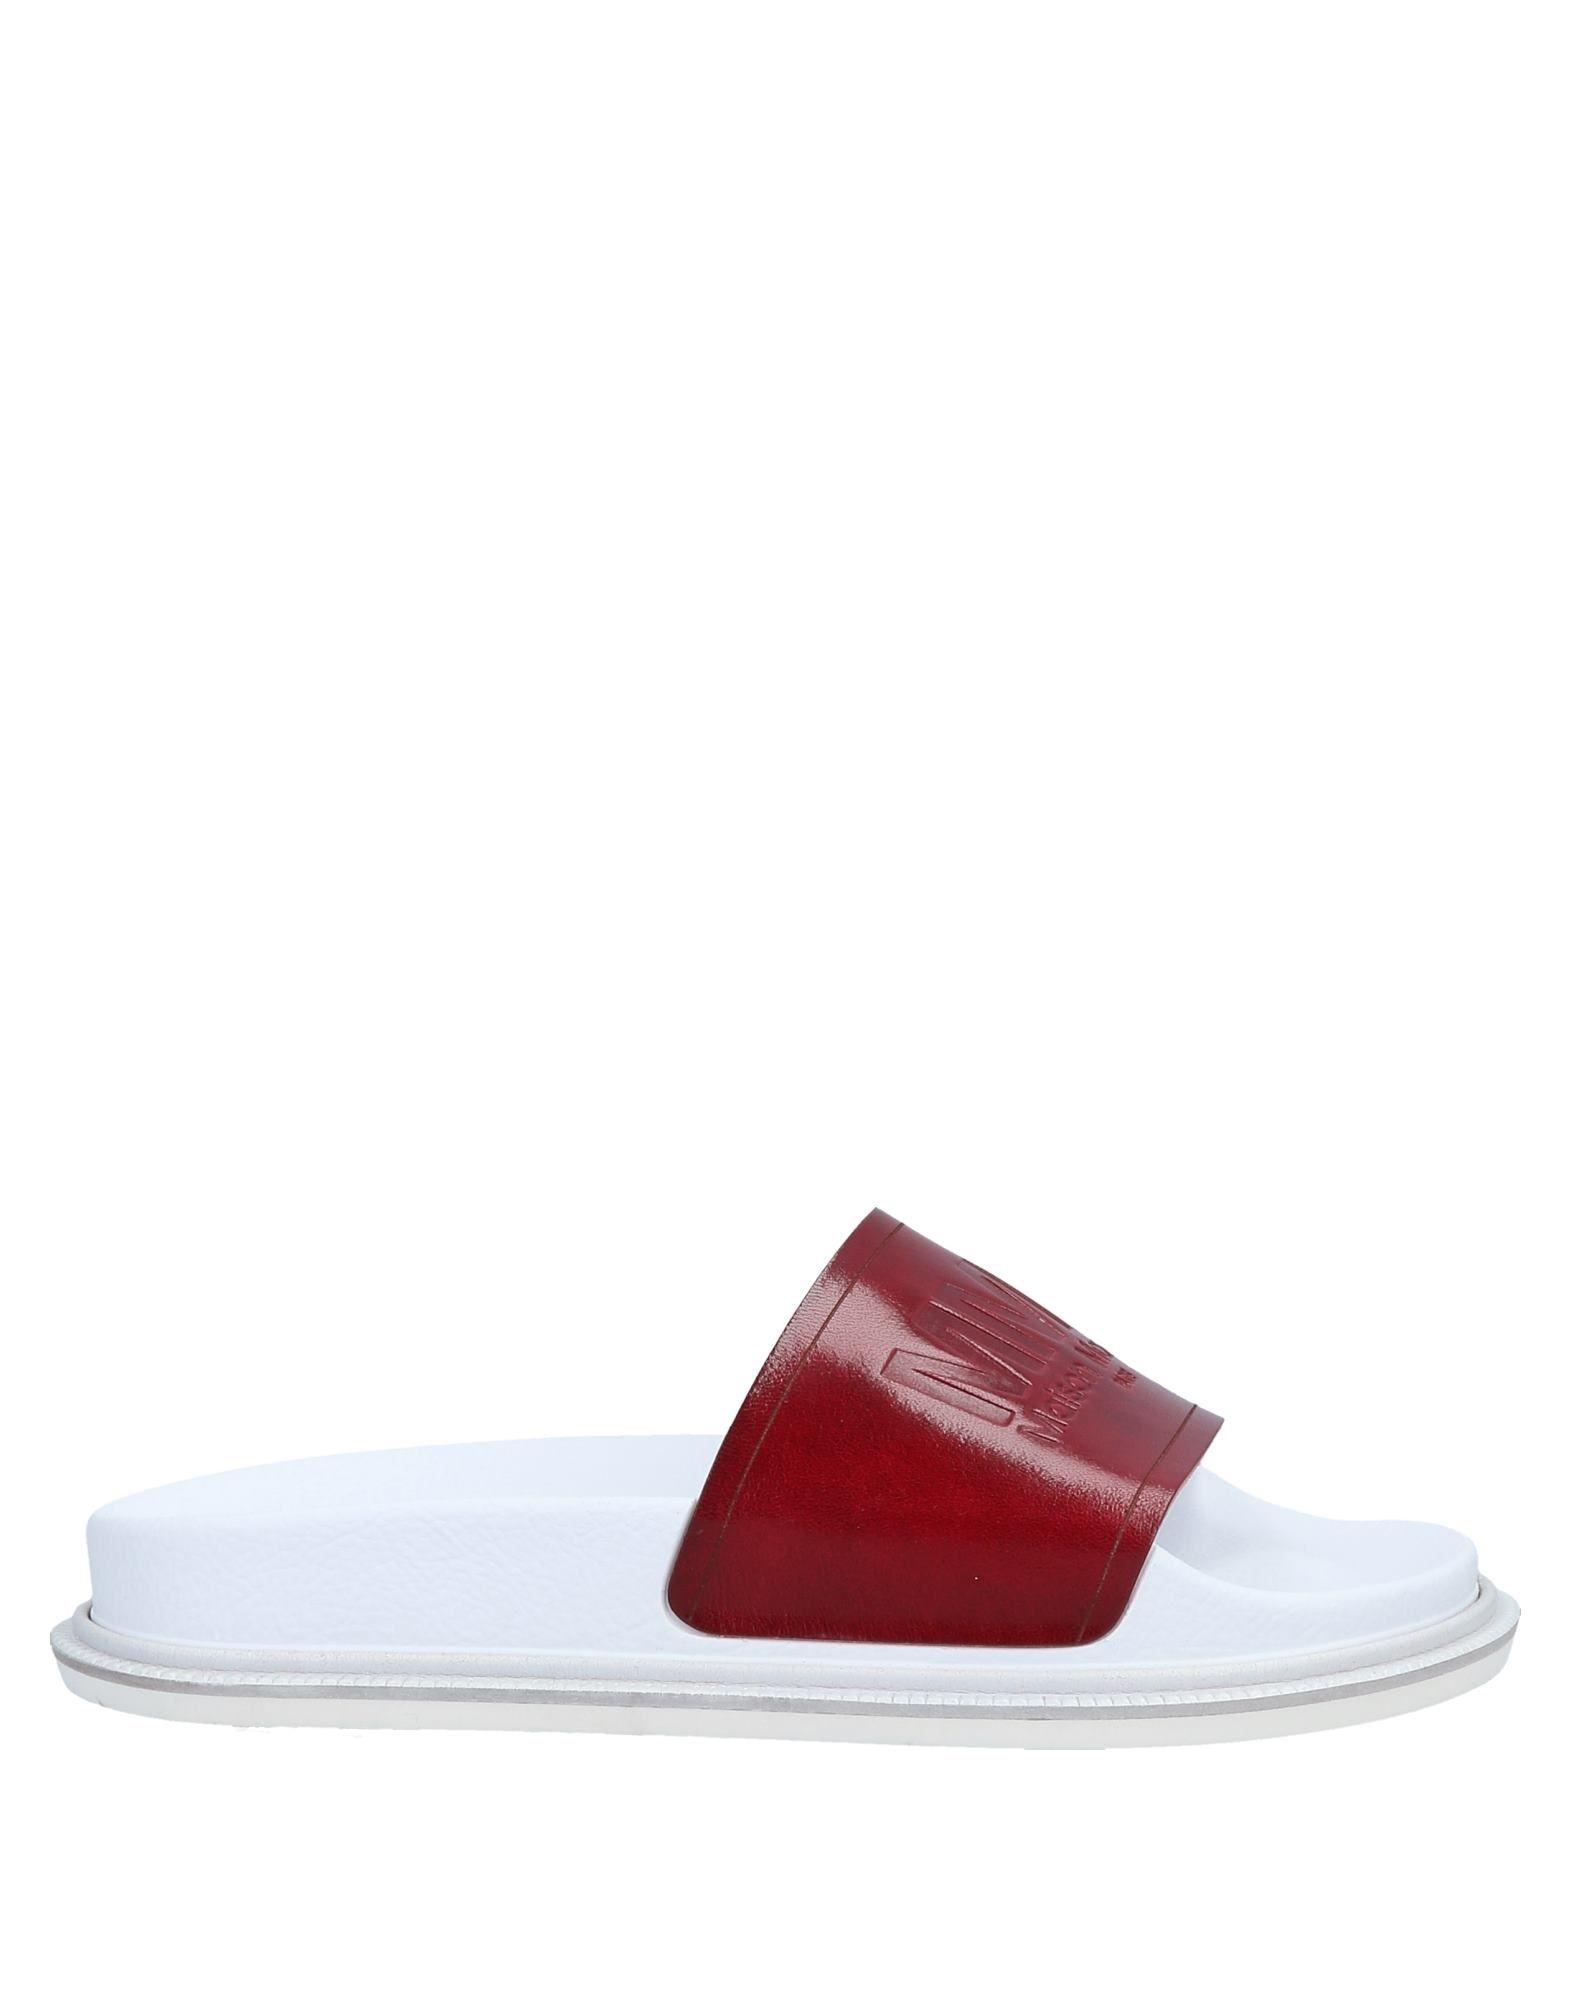 bfb28d29cf7e MM6 by Maison Martin Margiela Sandals in Red - Lyst